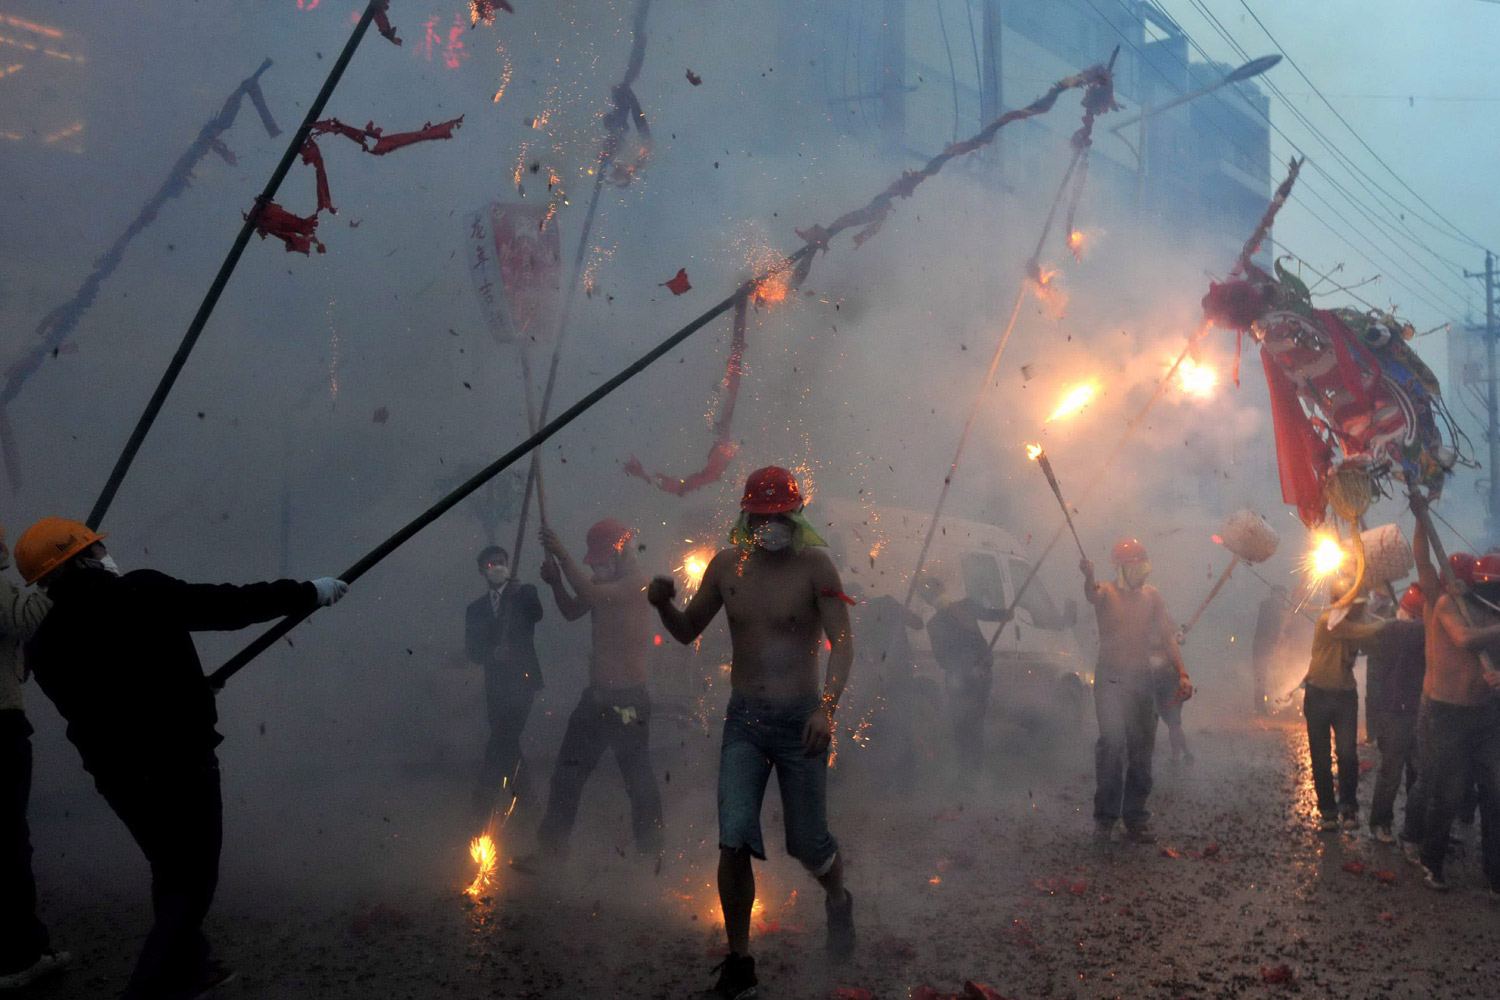 February 6, 2012. Young men parade paper dragons on bamboo sticks as fireworks and firecrackers are thrown at them in a street during the Lantern Festival in southwest Guizhou province, China.